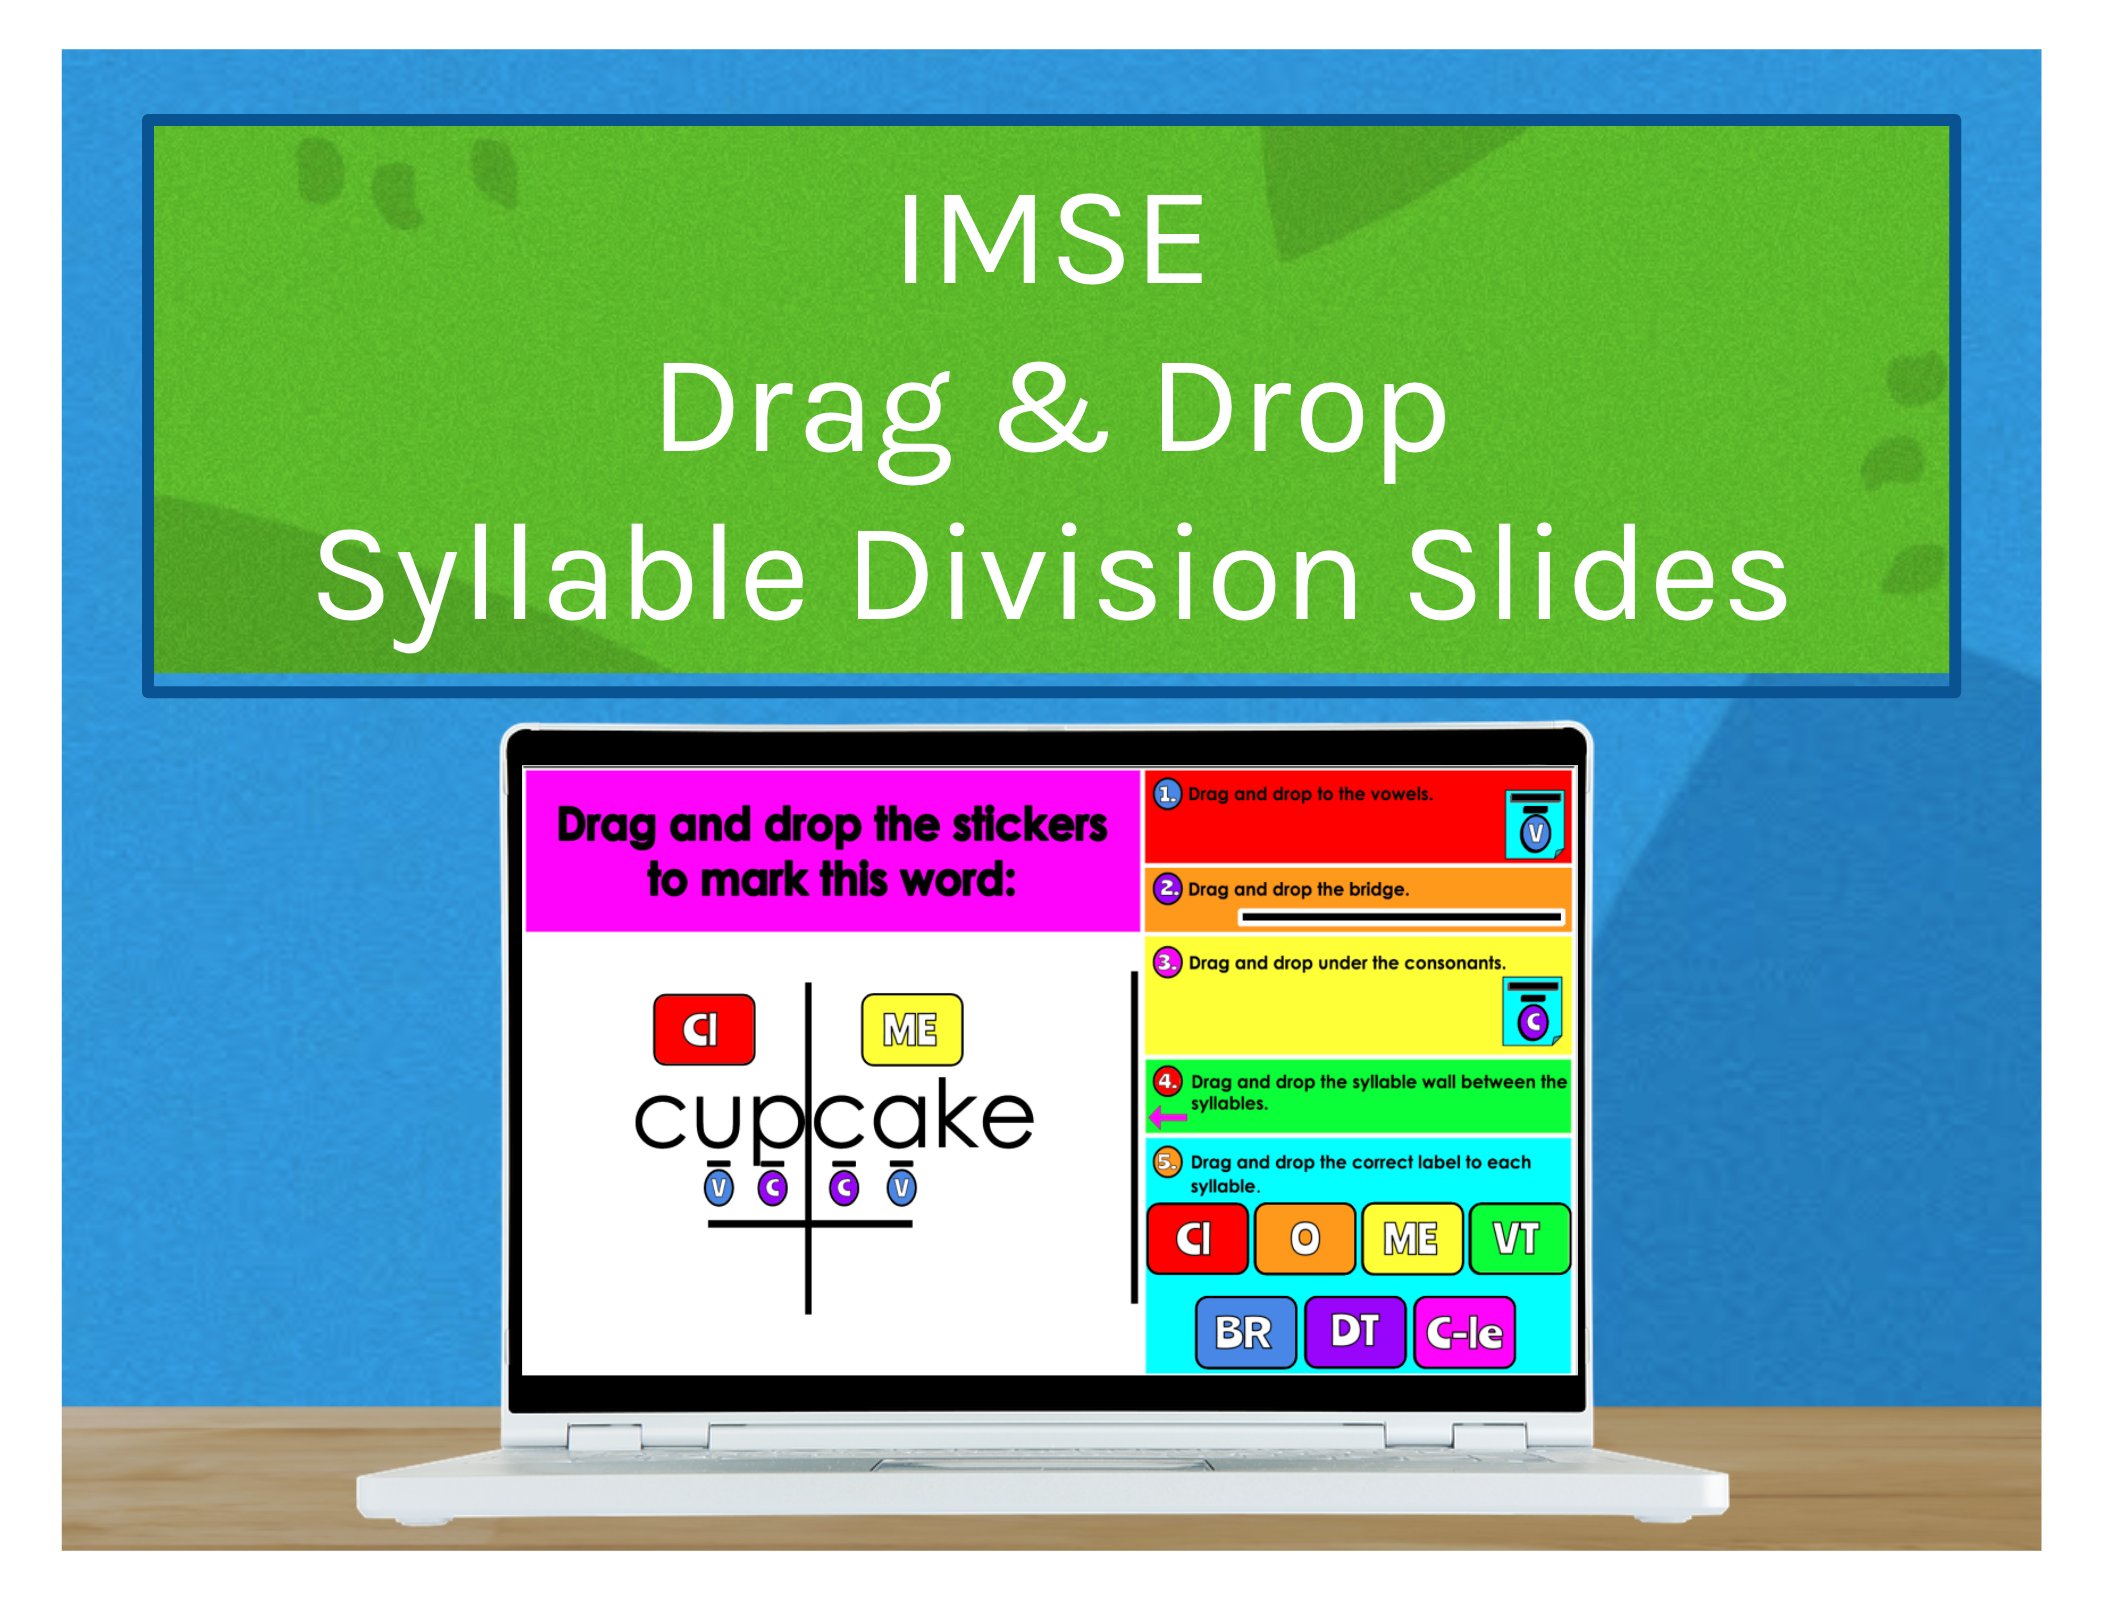 IMSE Drag & Drop Syllable Division Slides